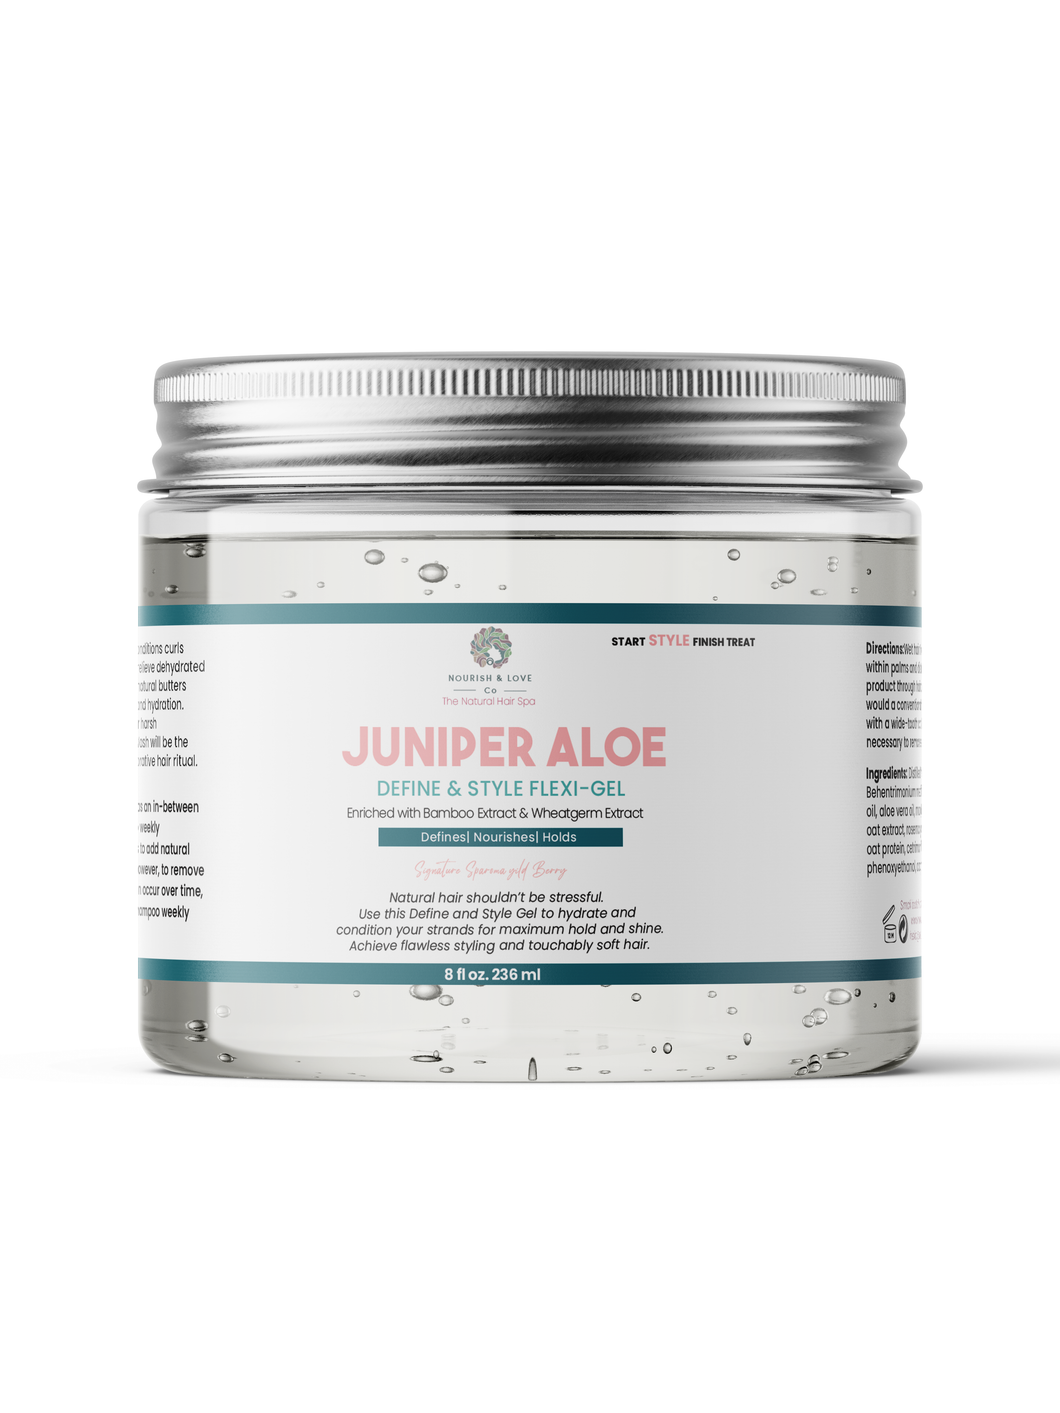 Juniper Aloe Define & Style Flexi-Gel